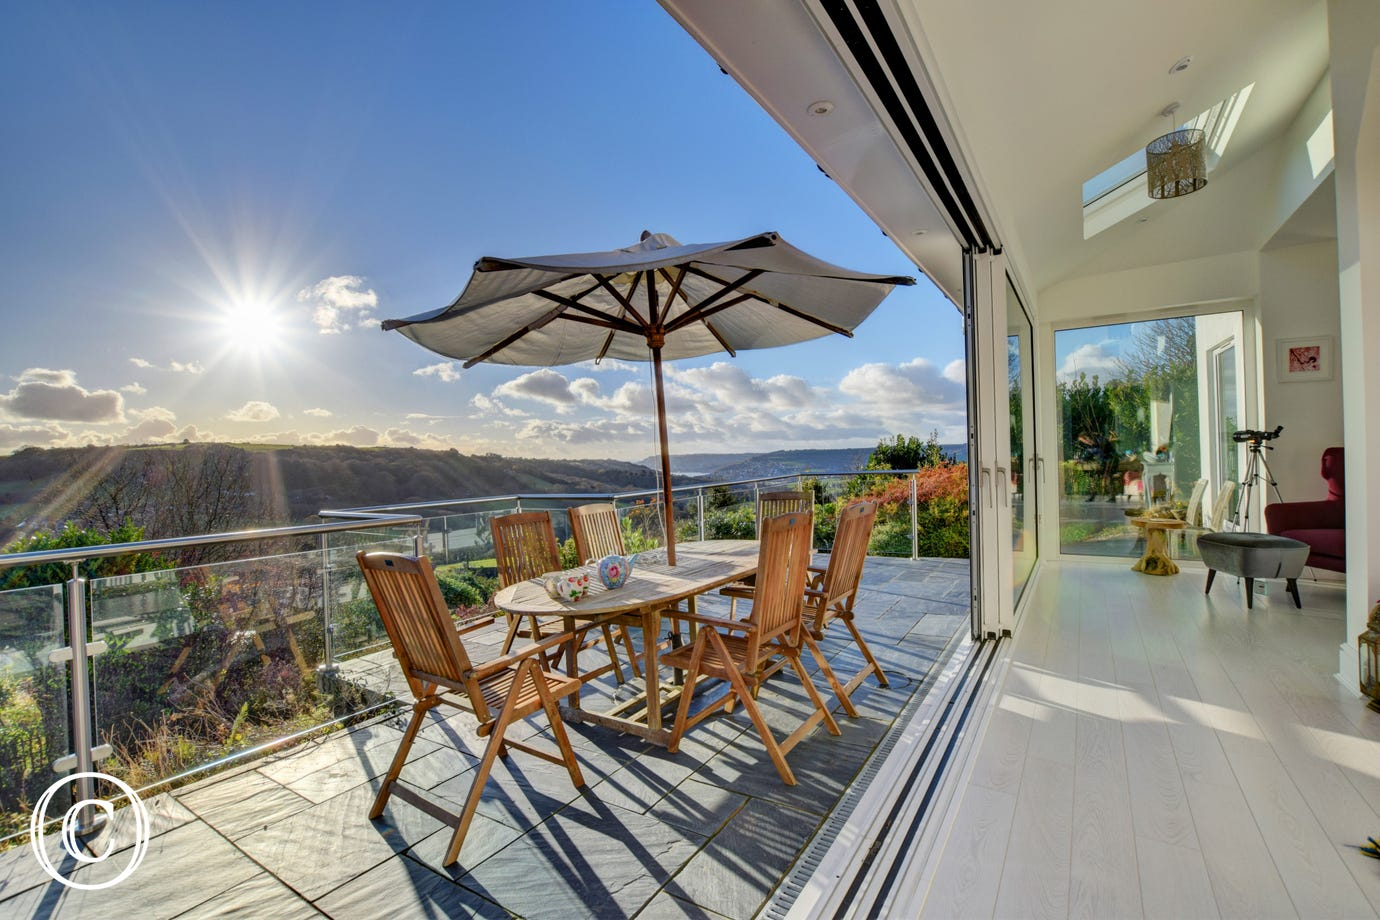 Sun terrace with seating and panoramic views across Lyme Bay